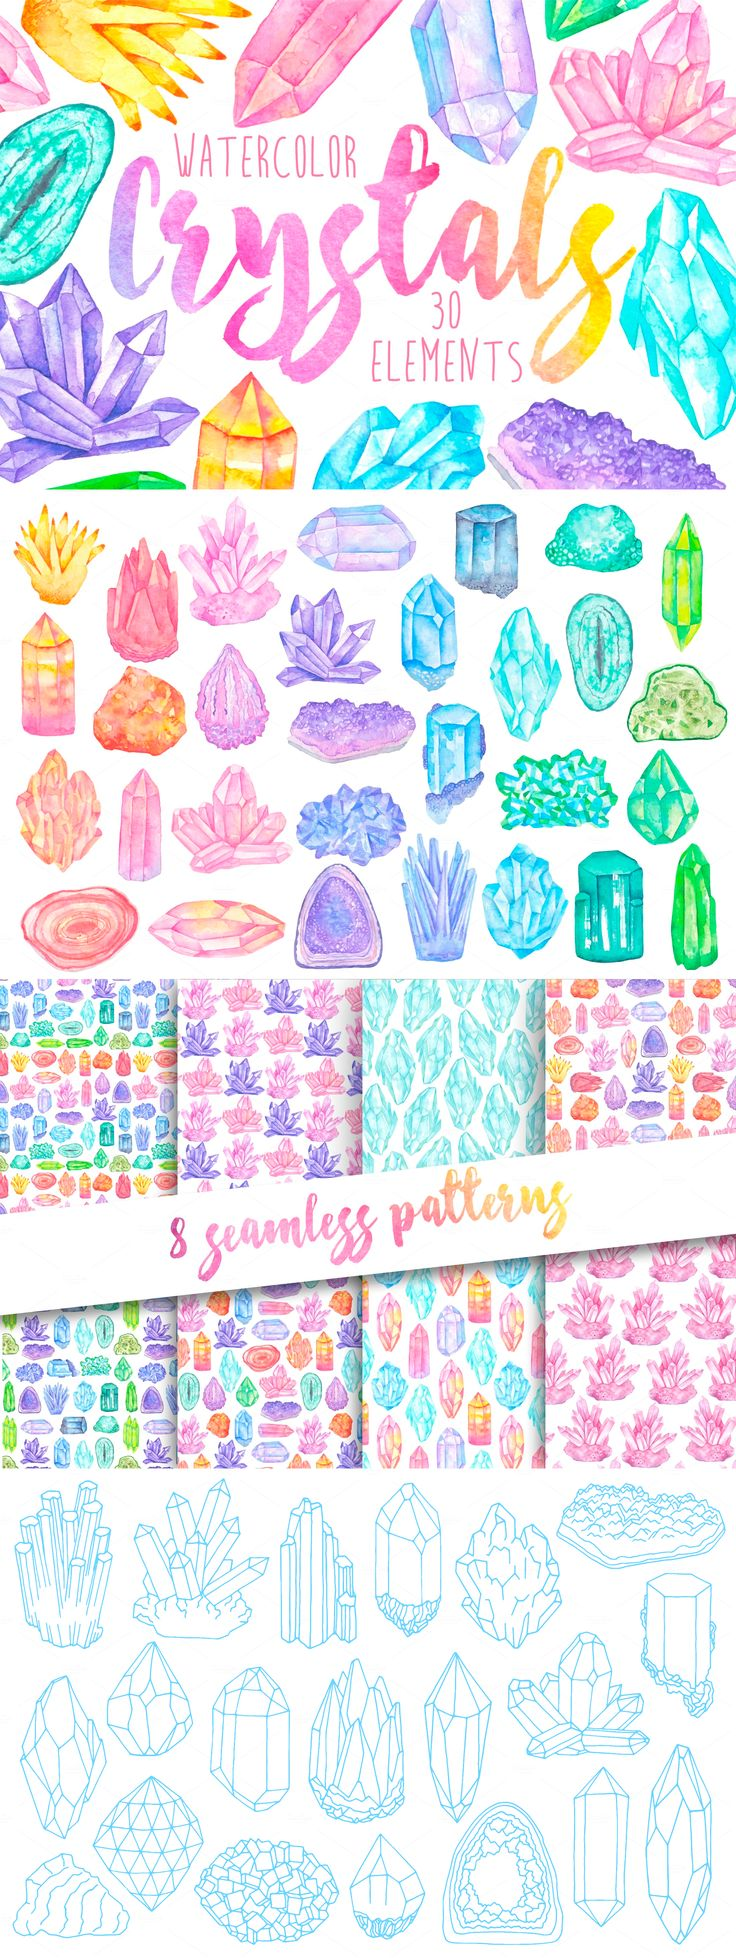 Crystals clipart hard object Hard/soft on 26 Pinterest Watercolor